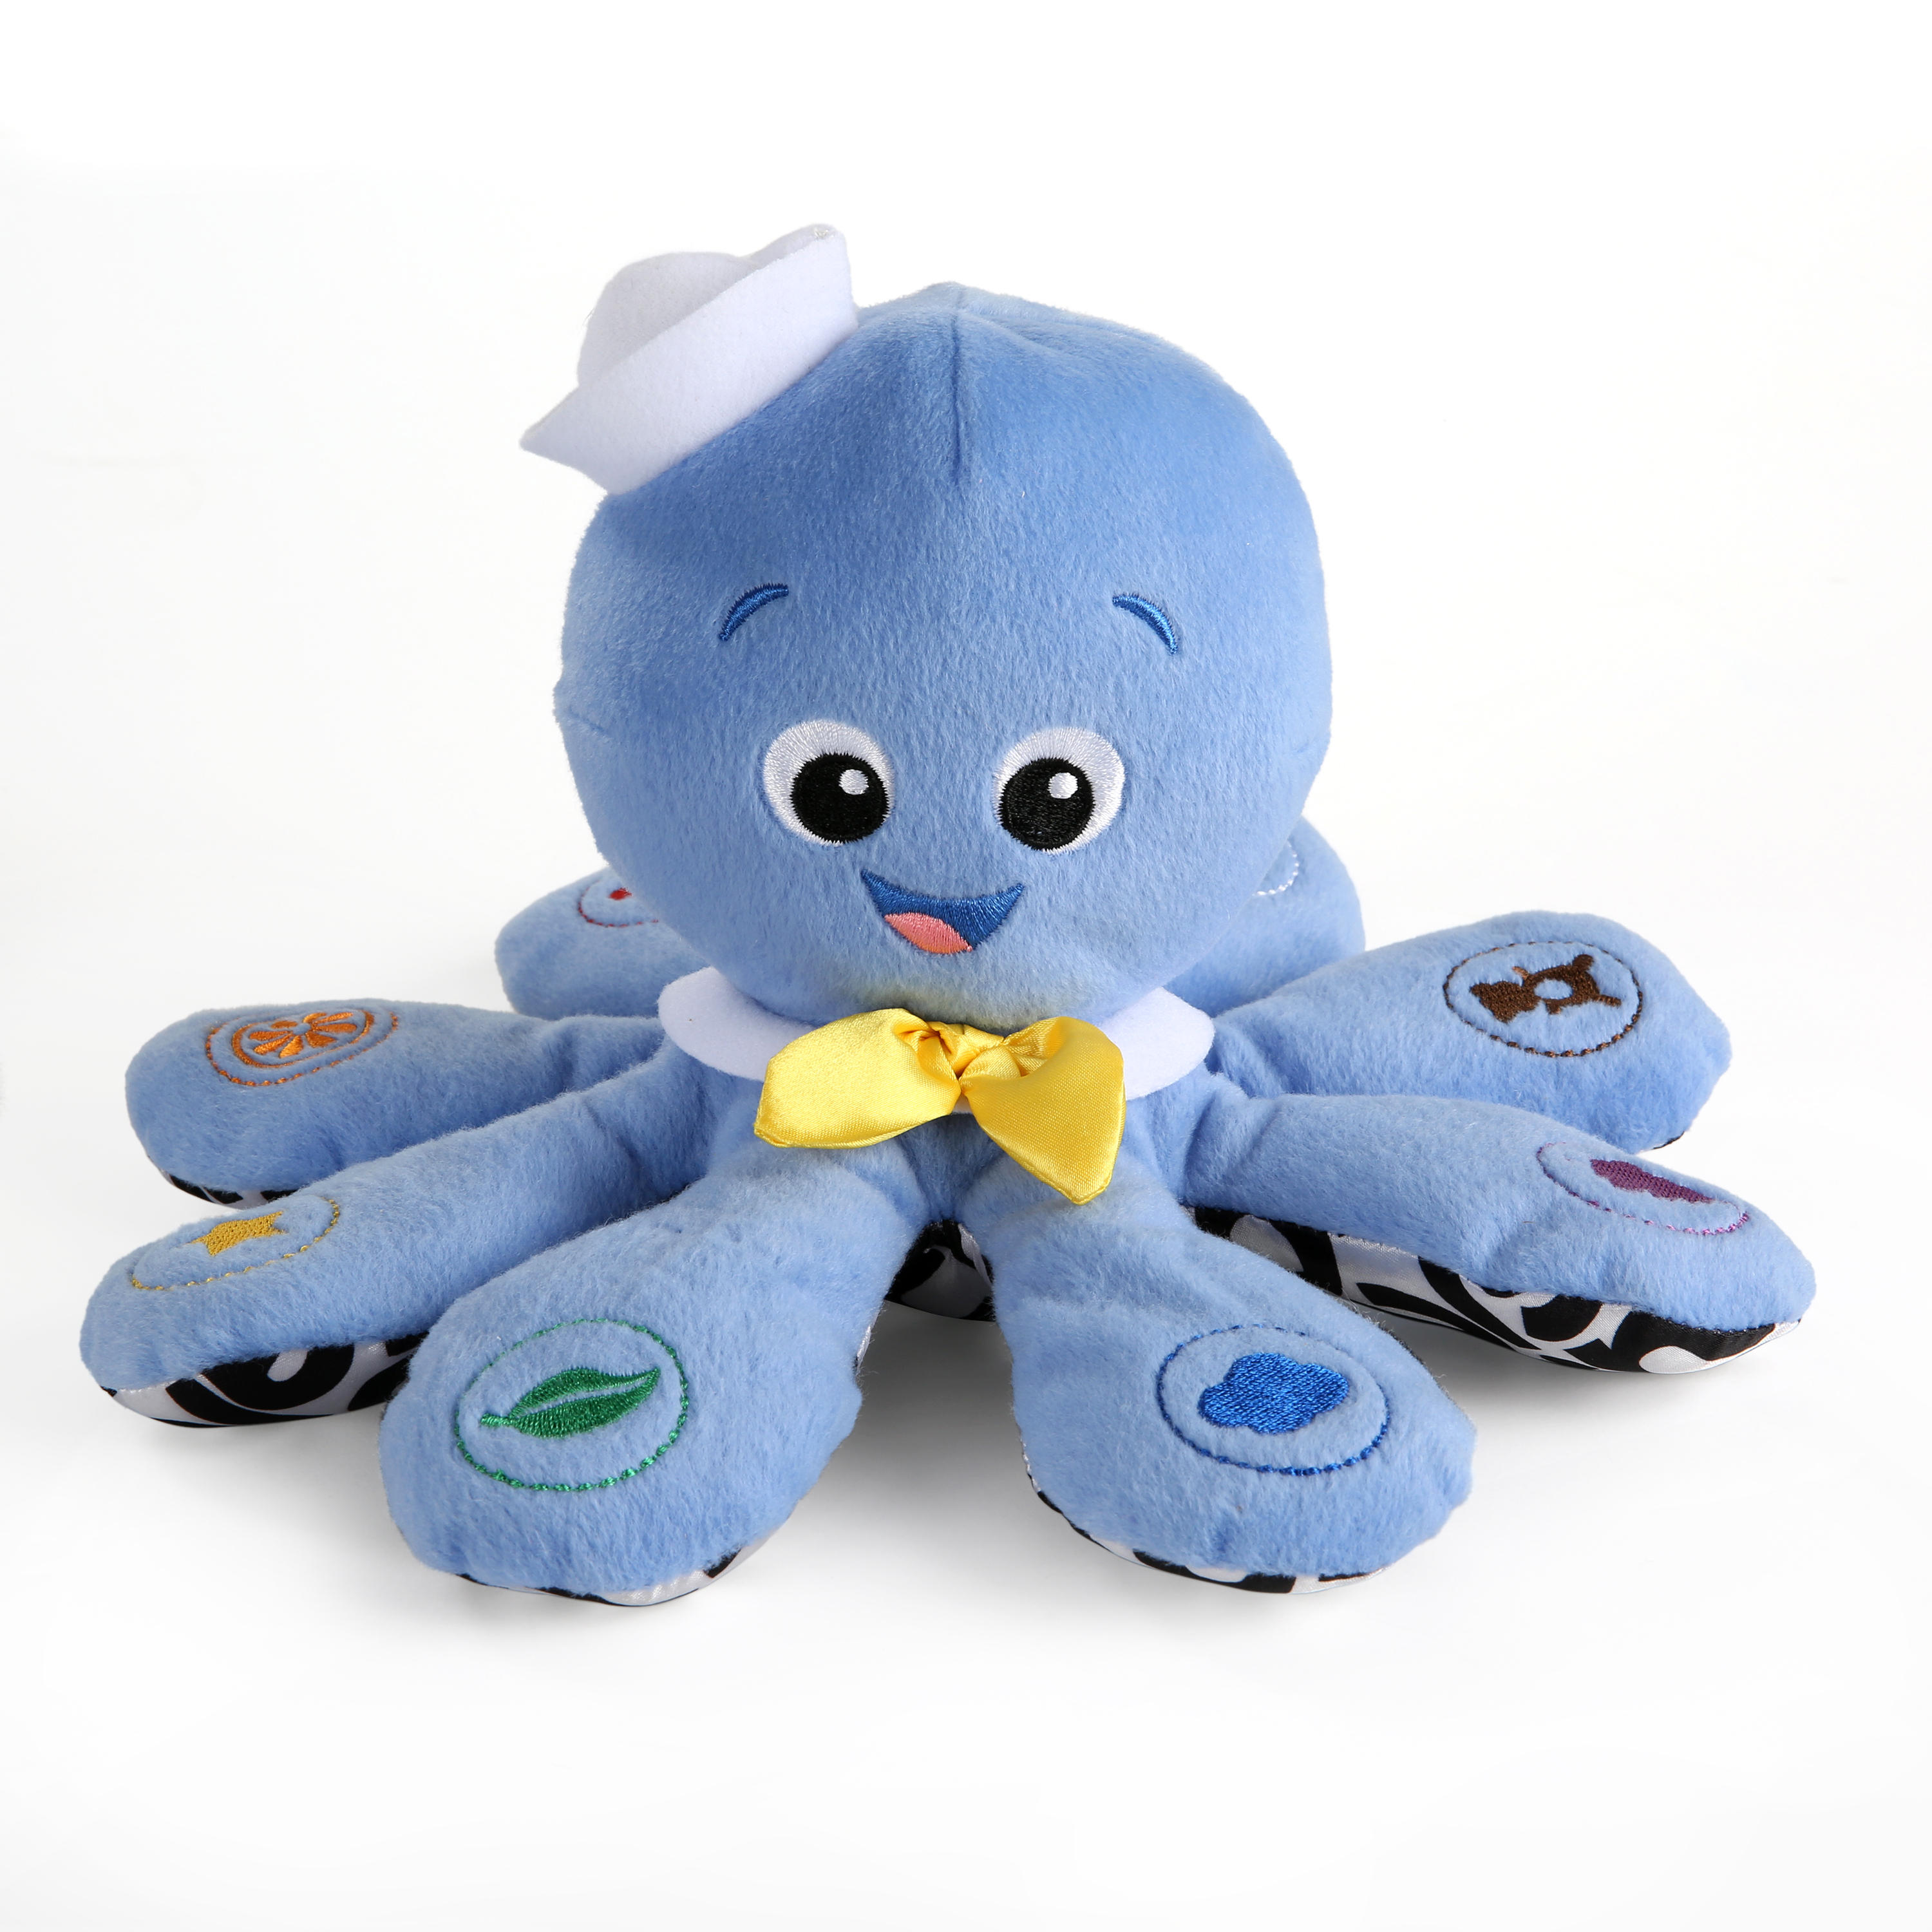 Octoplush™ Plush Toy